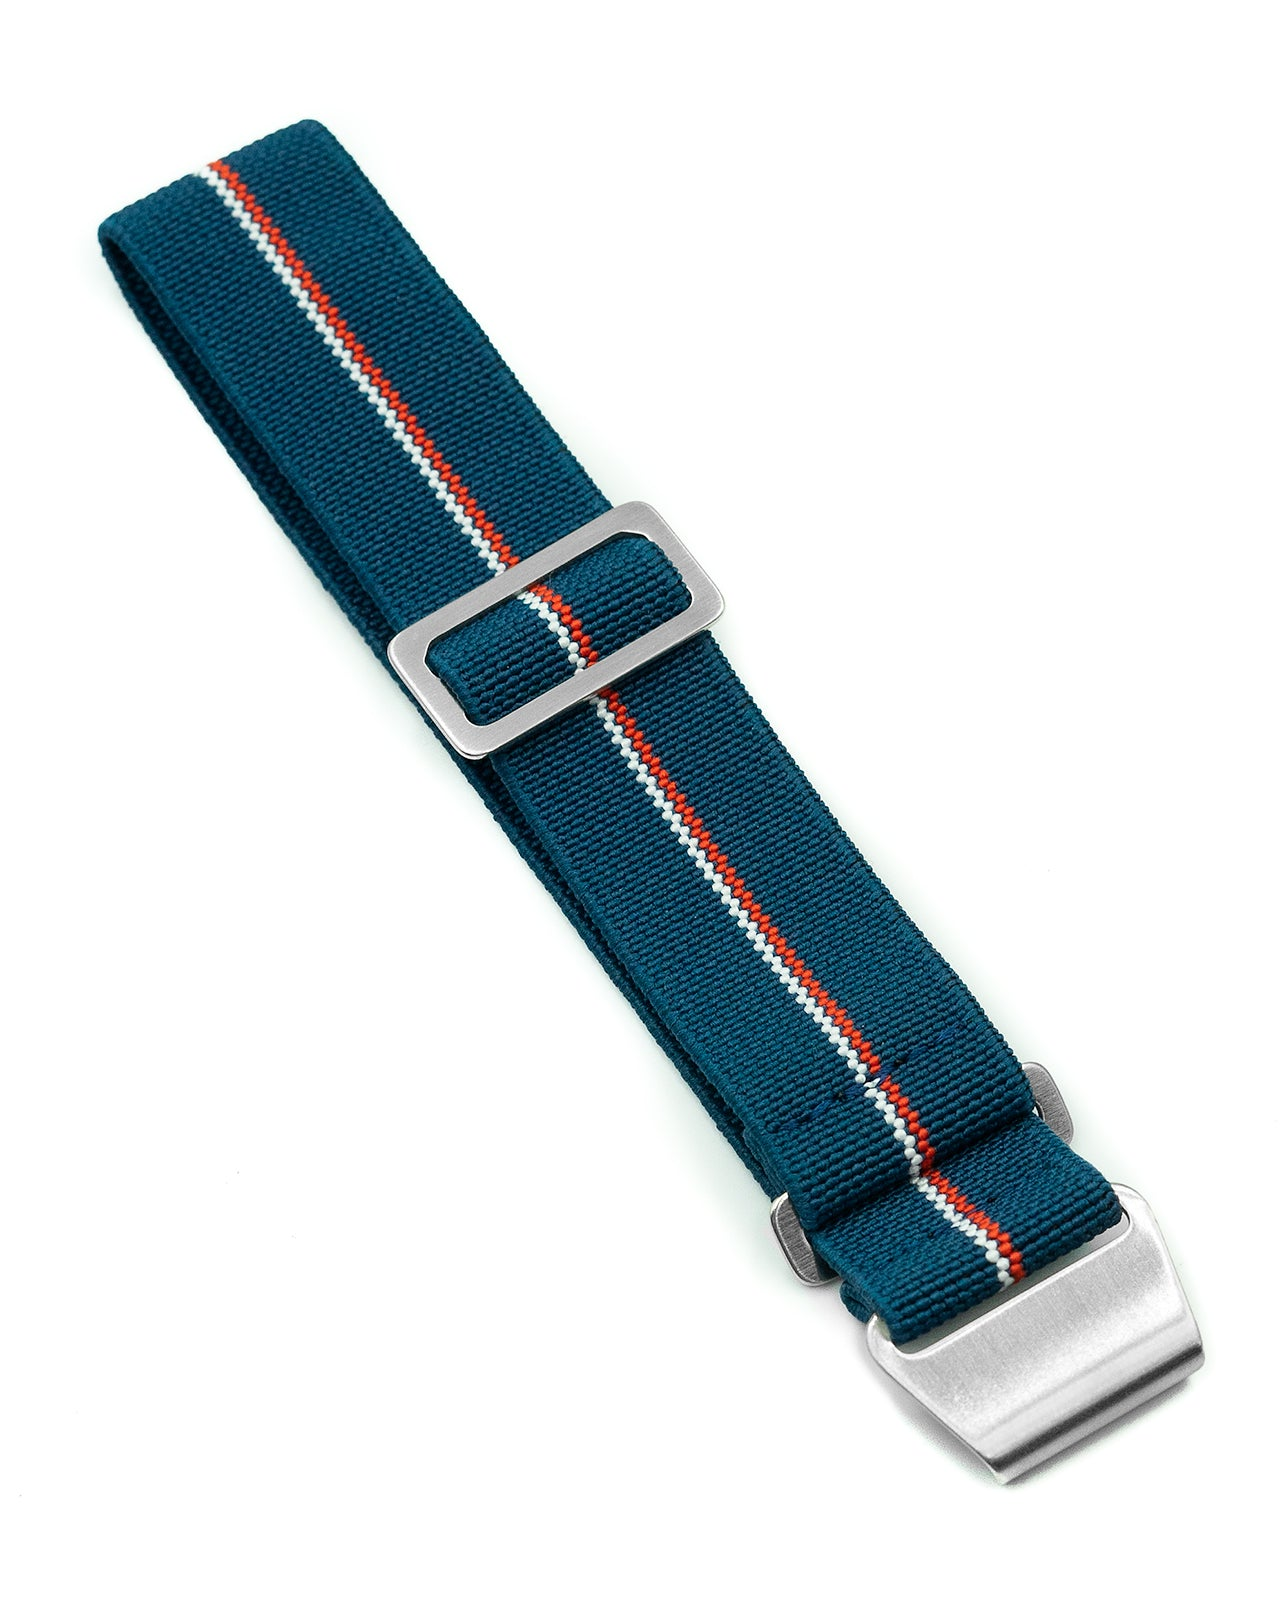 PARA Elastic - Blue with Red & White Centerline